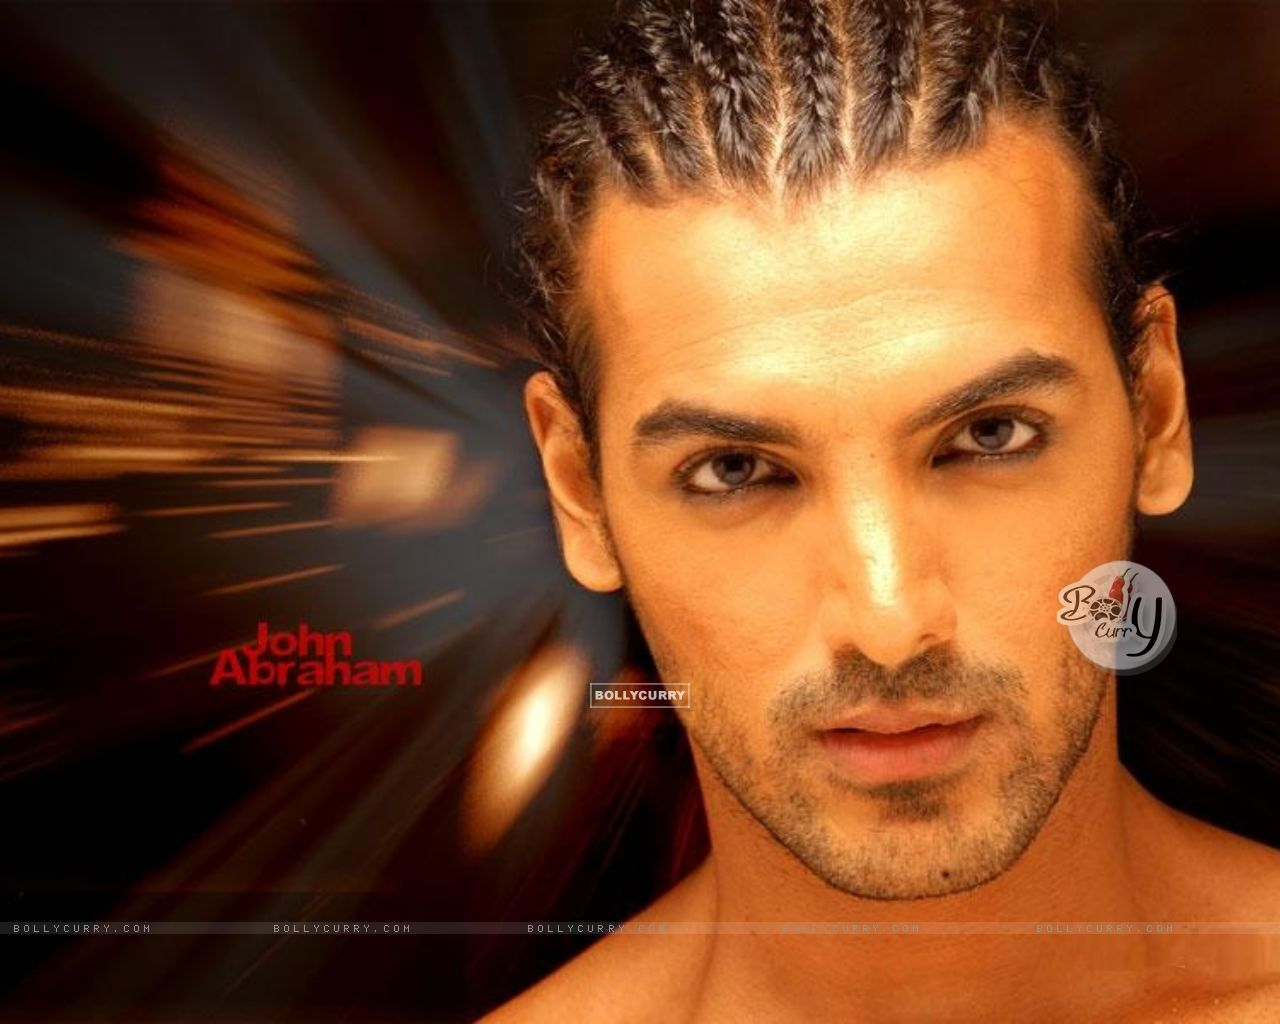 John Abraham John Abraham Wallpapers 18312